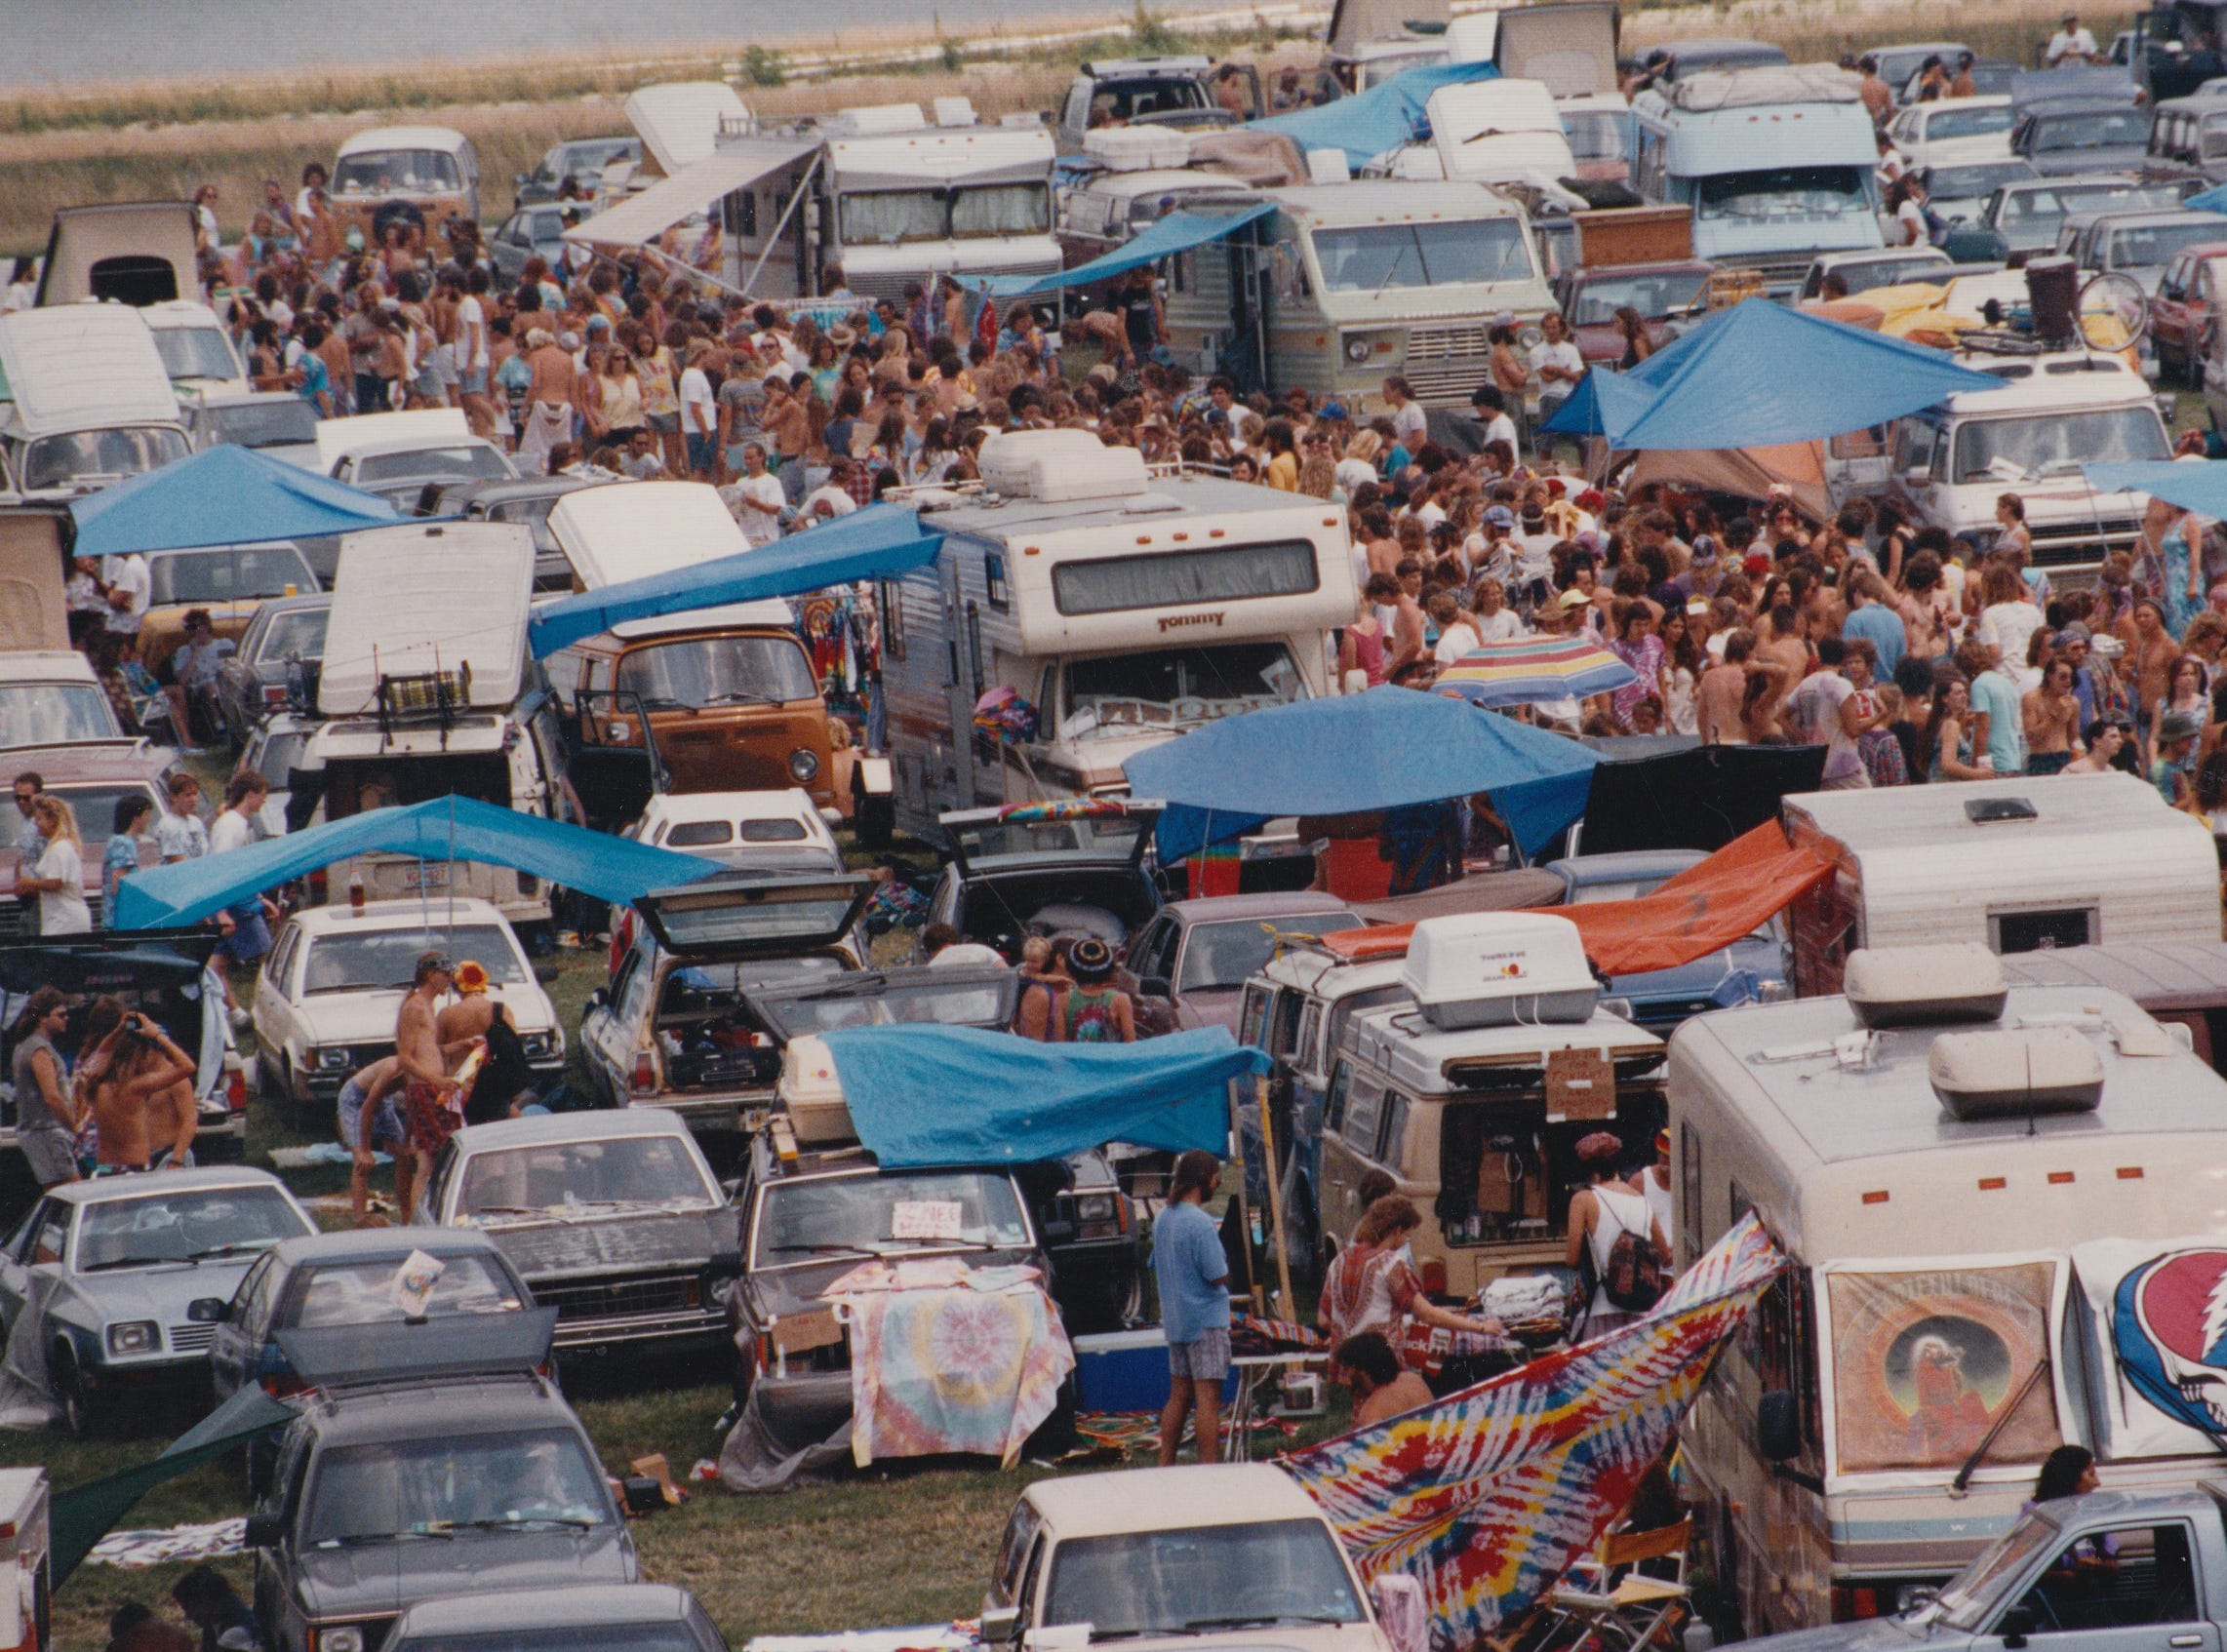 Deadheads camping at Deer Creek Music Center waiting for the Grateful Dead concert in July 1994